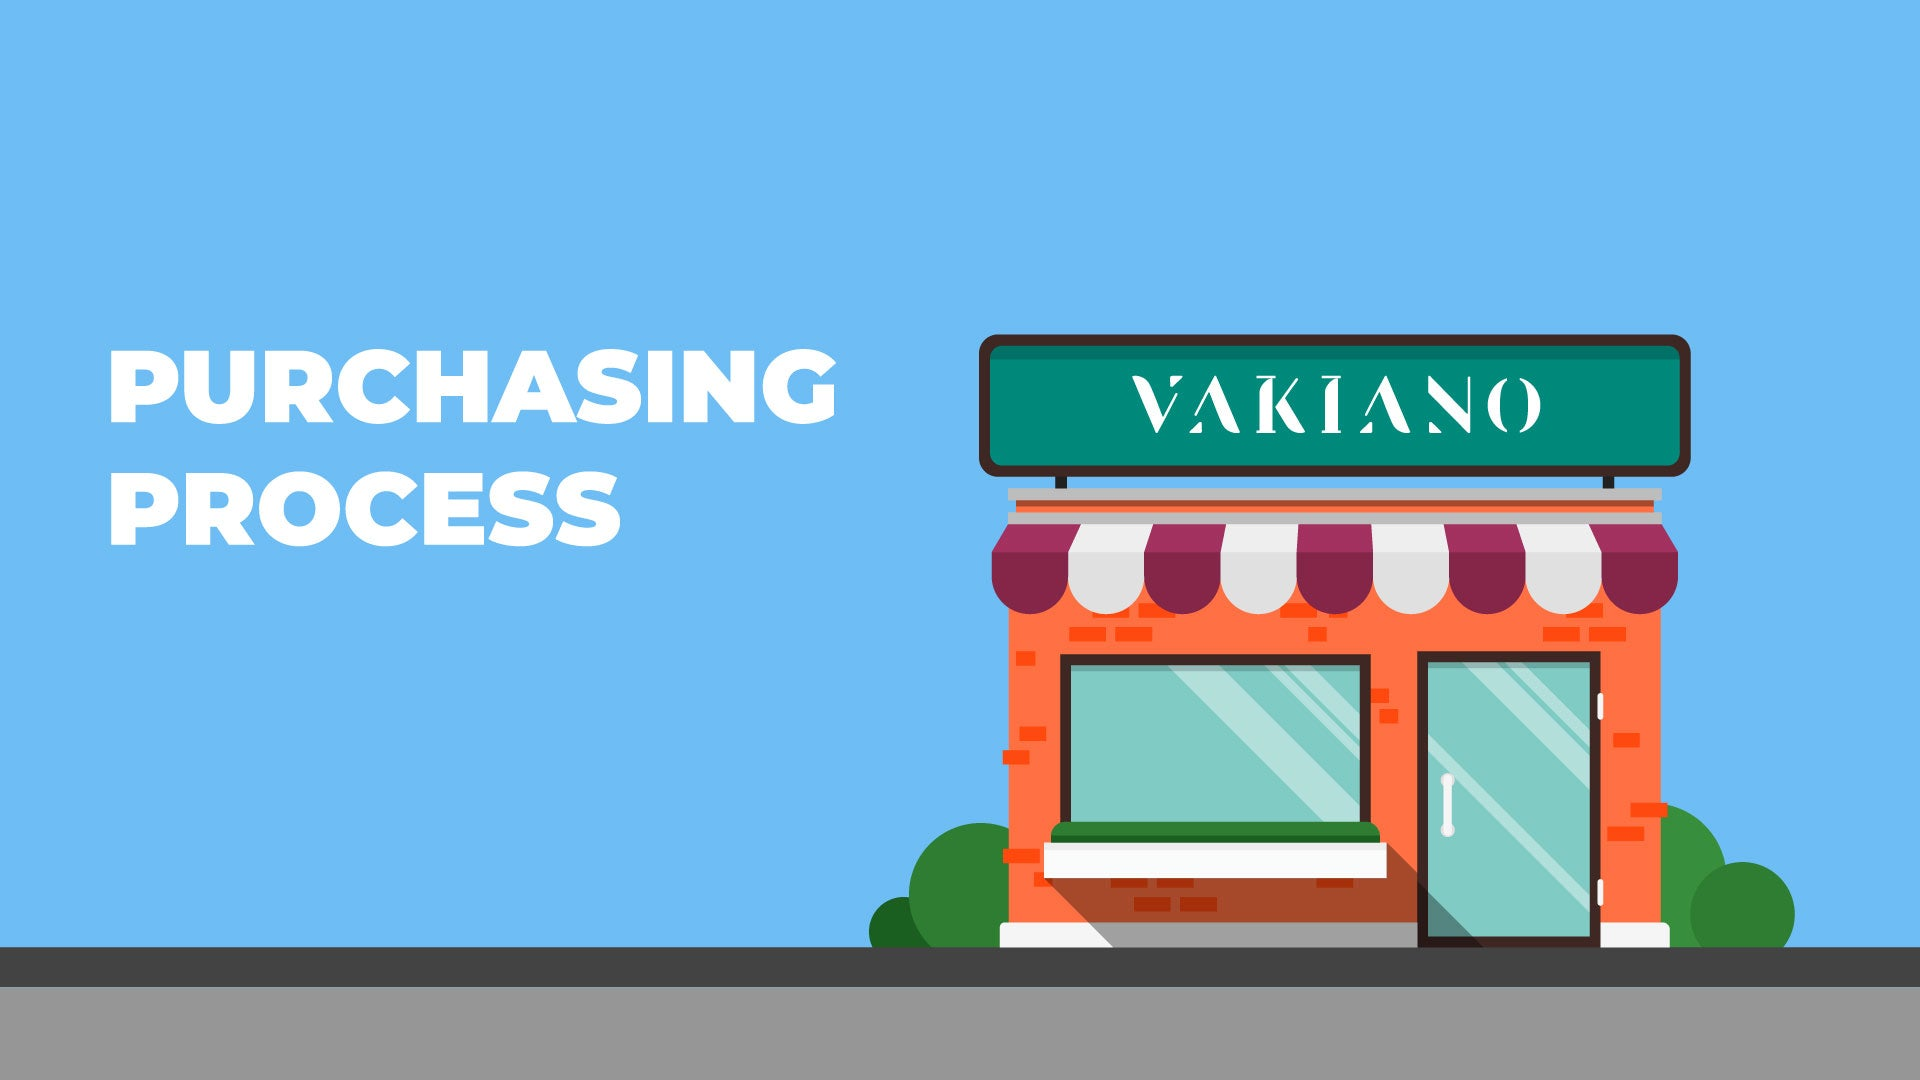 vakiano purchasing process